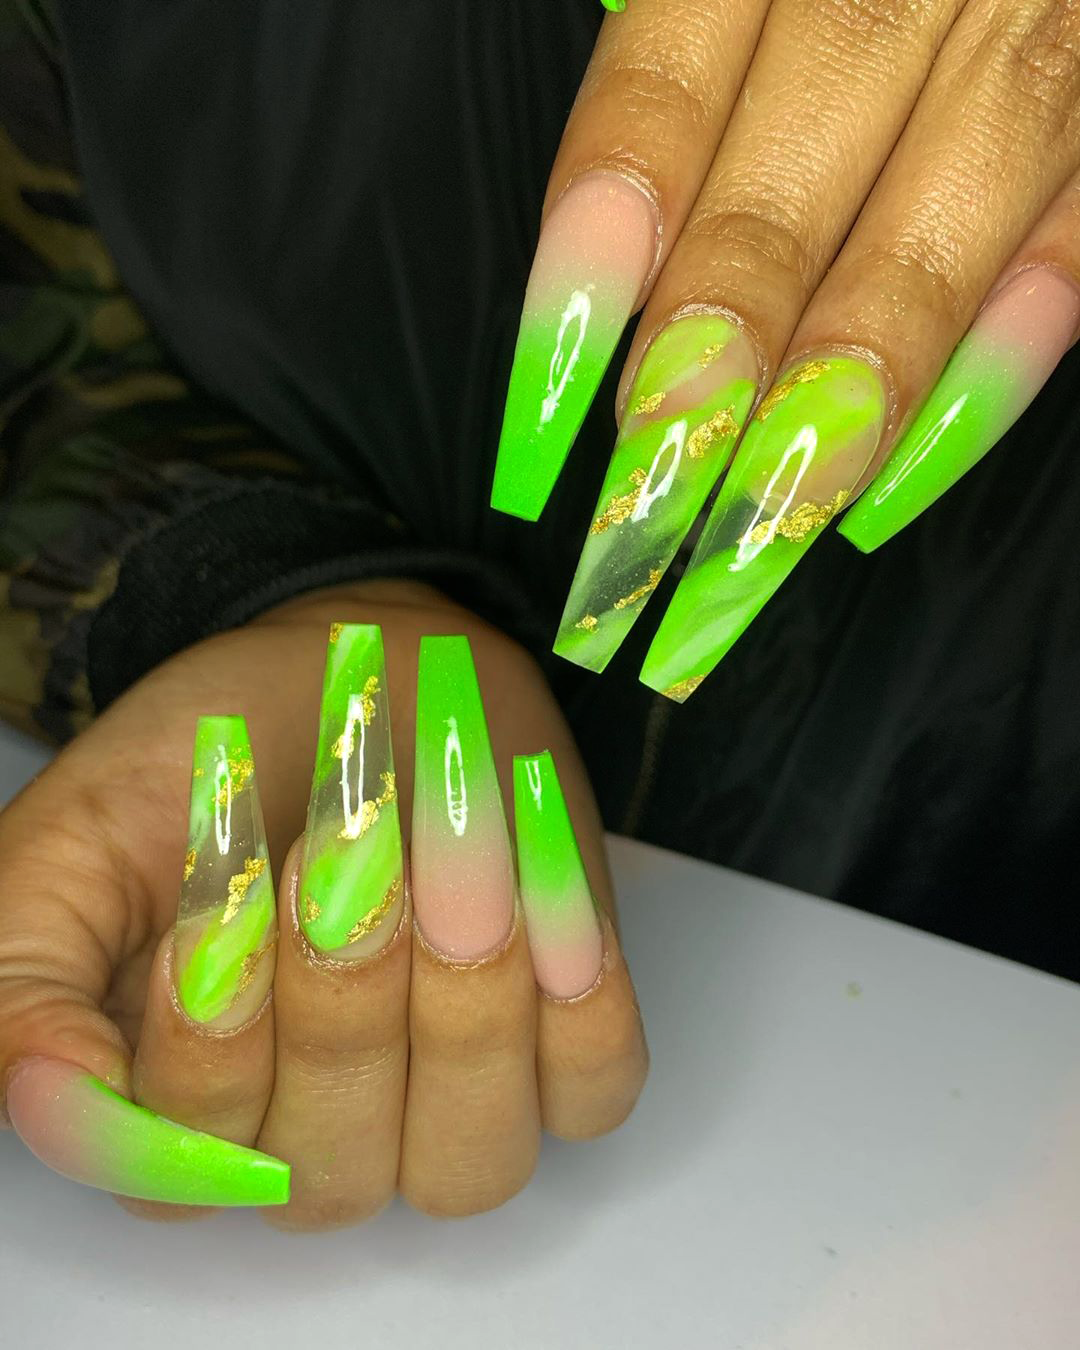 Lime Green Ombre Coffin Nails With Two Accent Lime Green Marble Nails Adorned With Gold Foil In 2020 Green Acrylic Nails Neon Green Nails Green Nail Designs